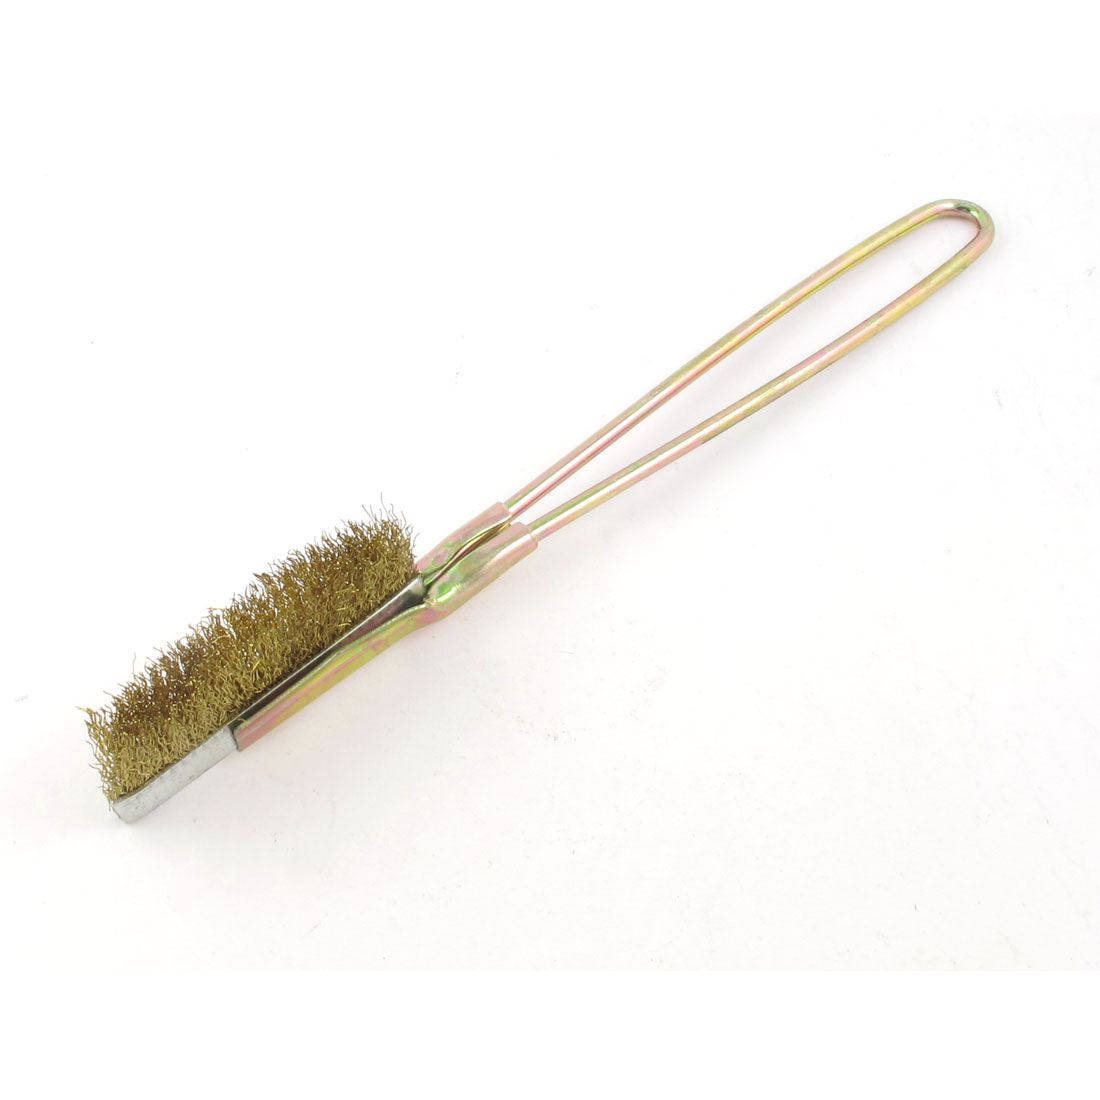 Bronze Tone Handle Handheld Rust Stain Cleaning Yellow Steel Wire Brush 22cm Long